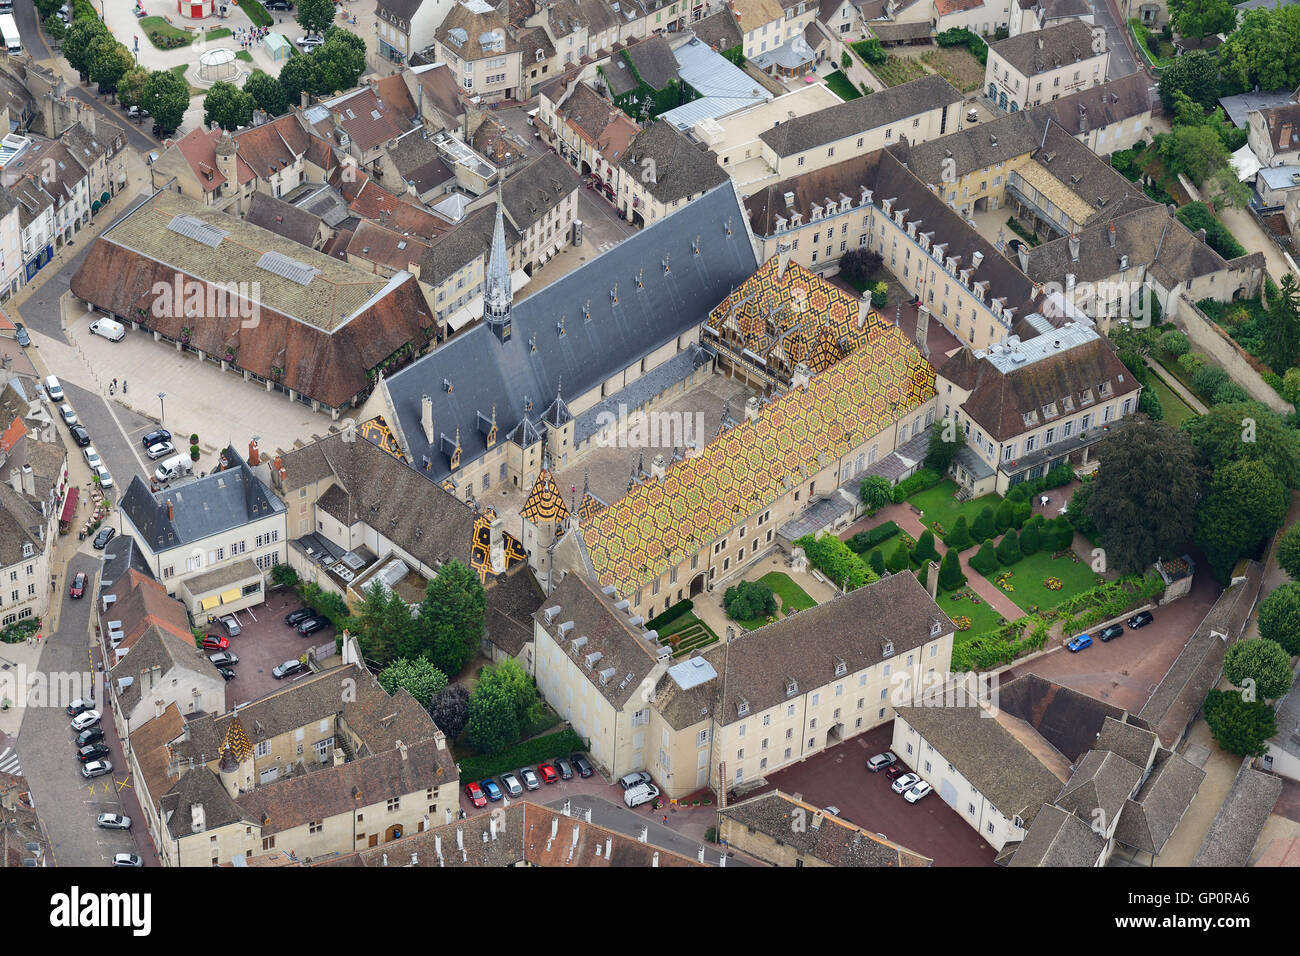 MEDIEVAL HOSPICE OF BEAUNE WITH ITS ROOF OF GLAZED TILES (aerial view). Hotel-Dieu of Beaune, Cote d'Or, Burgundy, - Stock Image